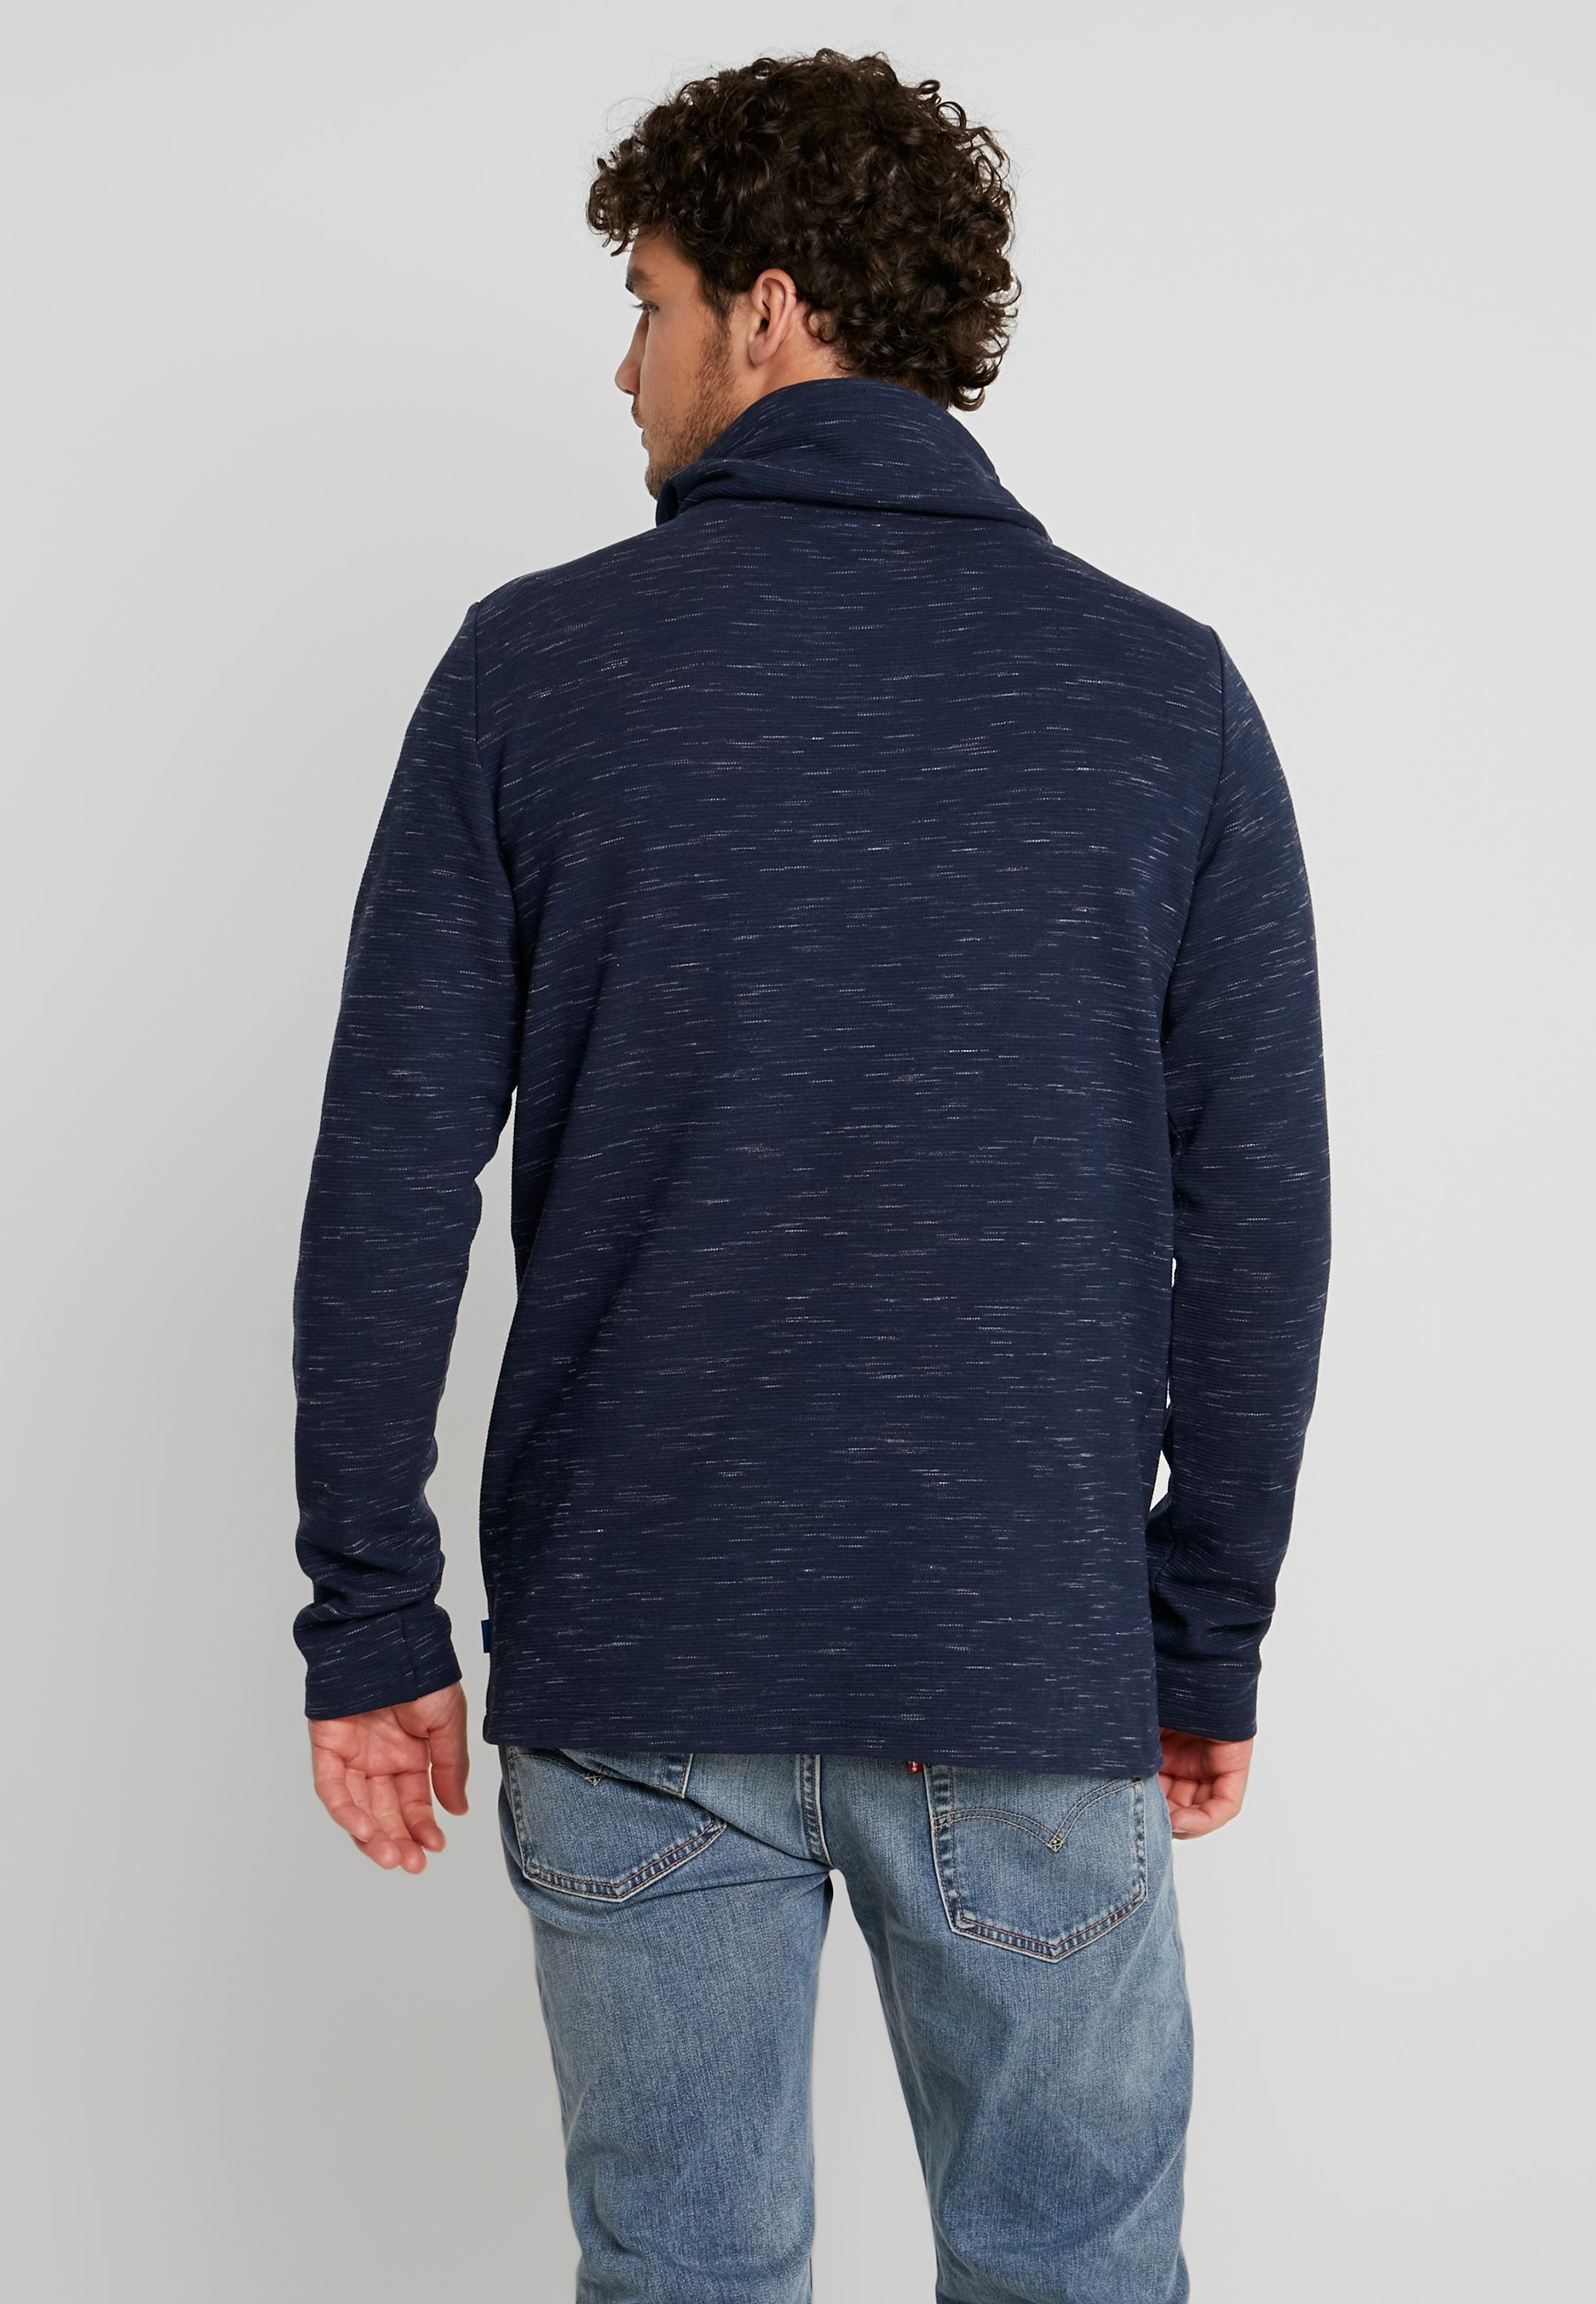 TeeT Longues Edc Neck Manches À Navy Funnel Esprit By shirt Ygvb6If7y